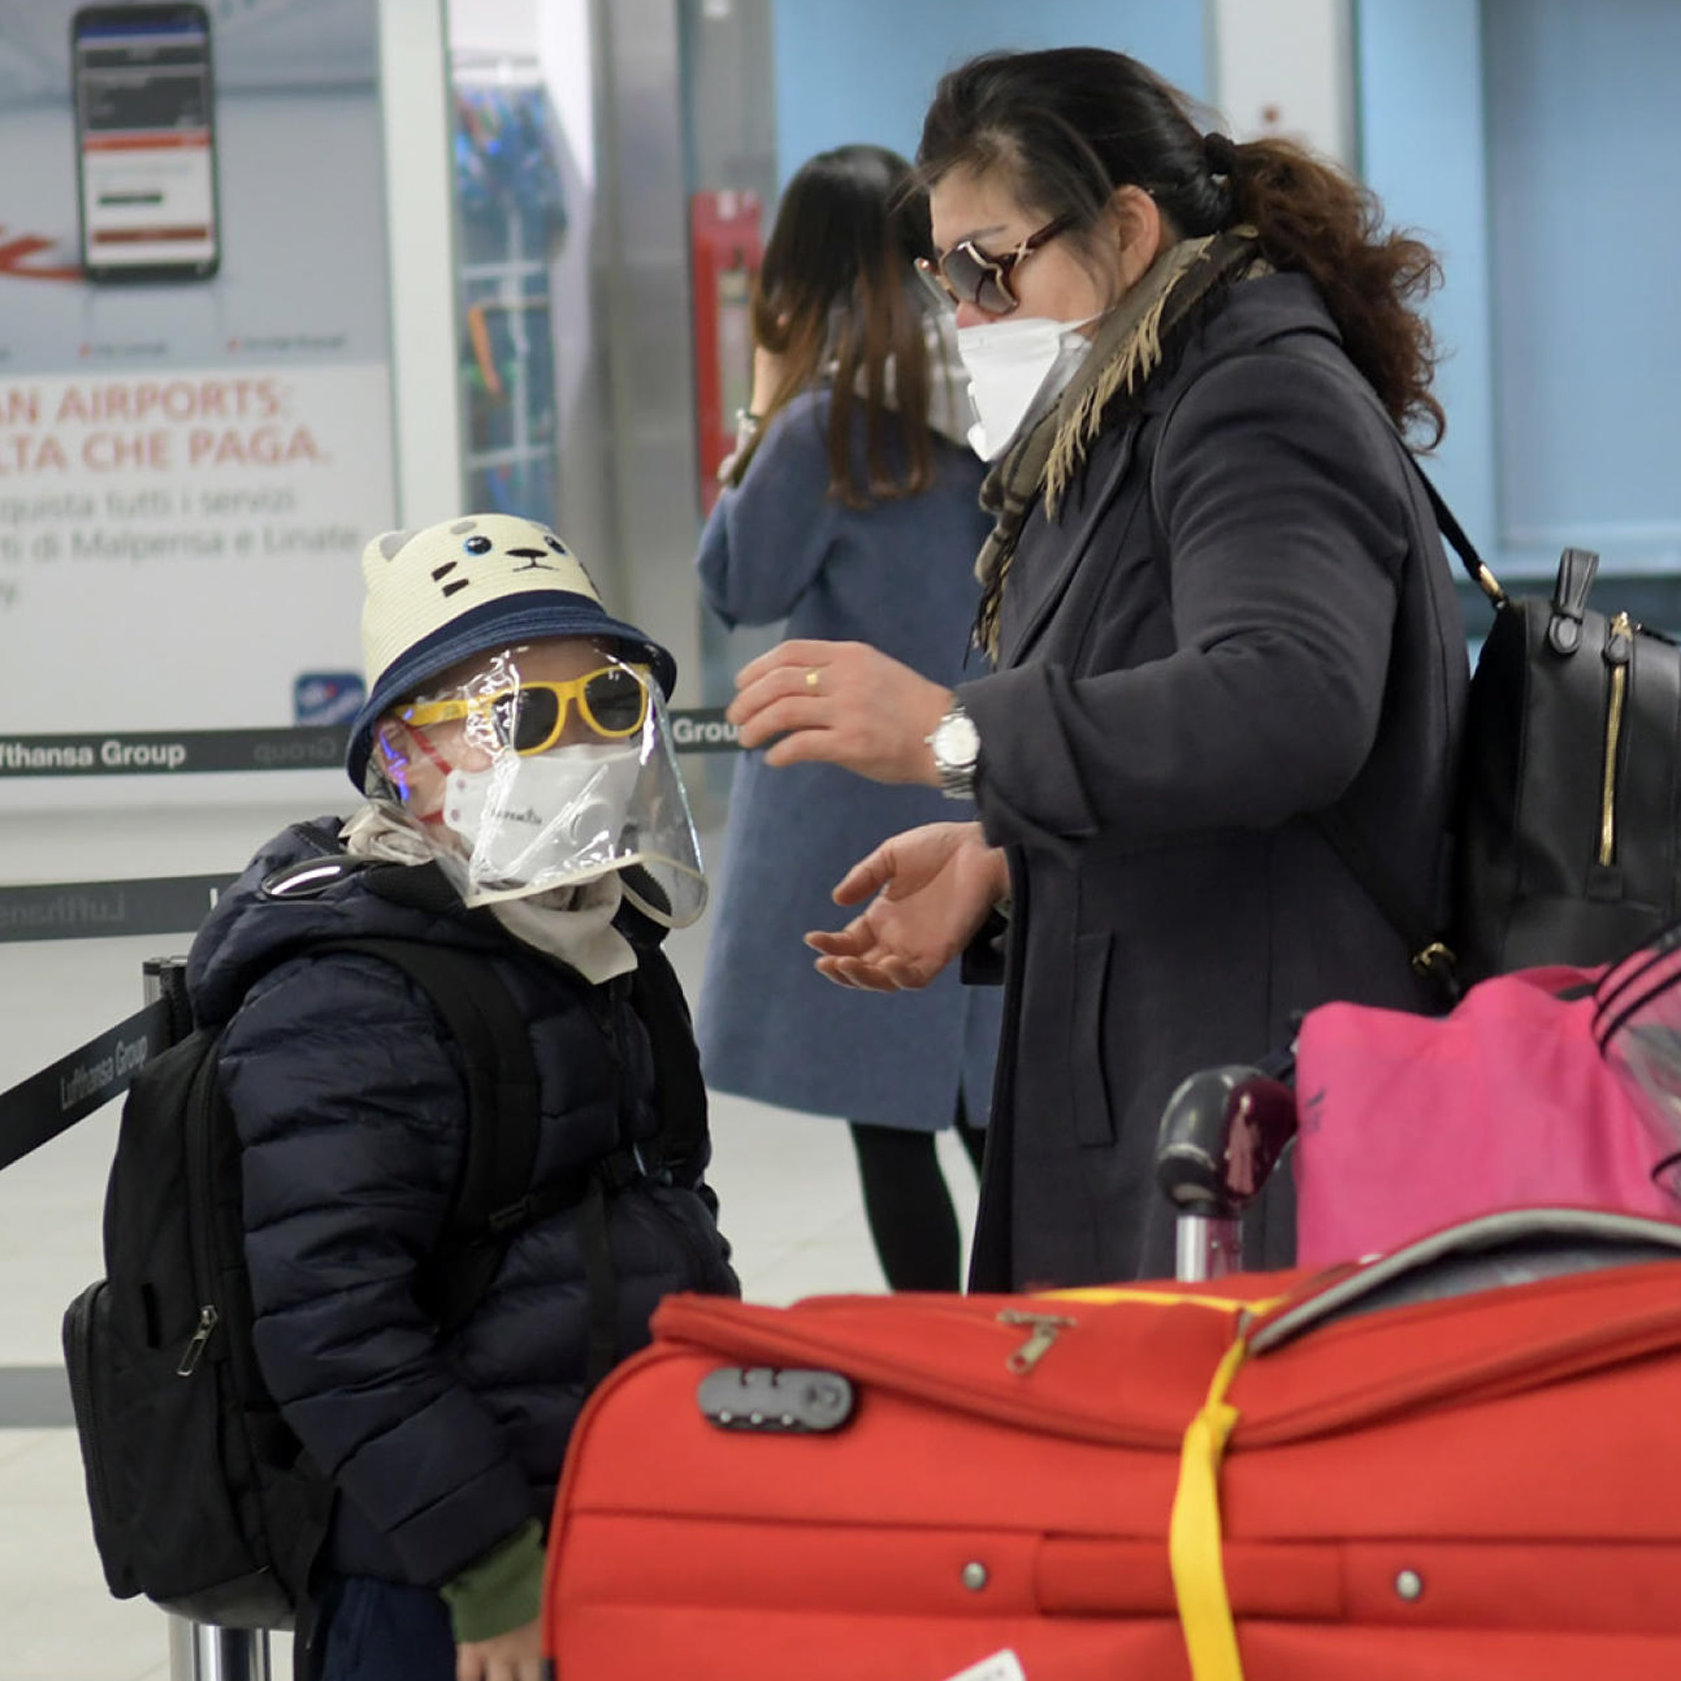 Coronavirus Is Spreading. Should You Cancel Your Vacation? - The ...